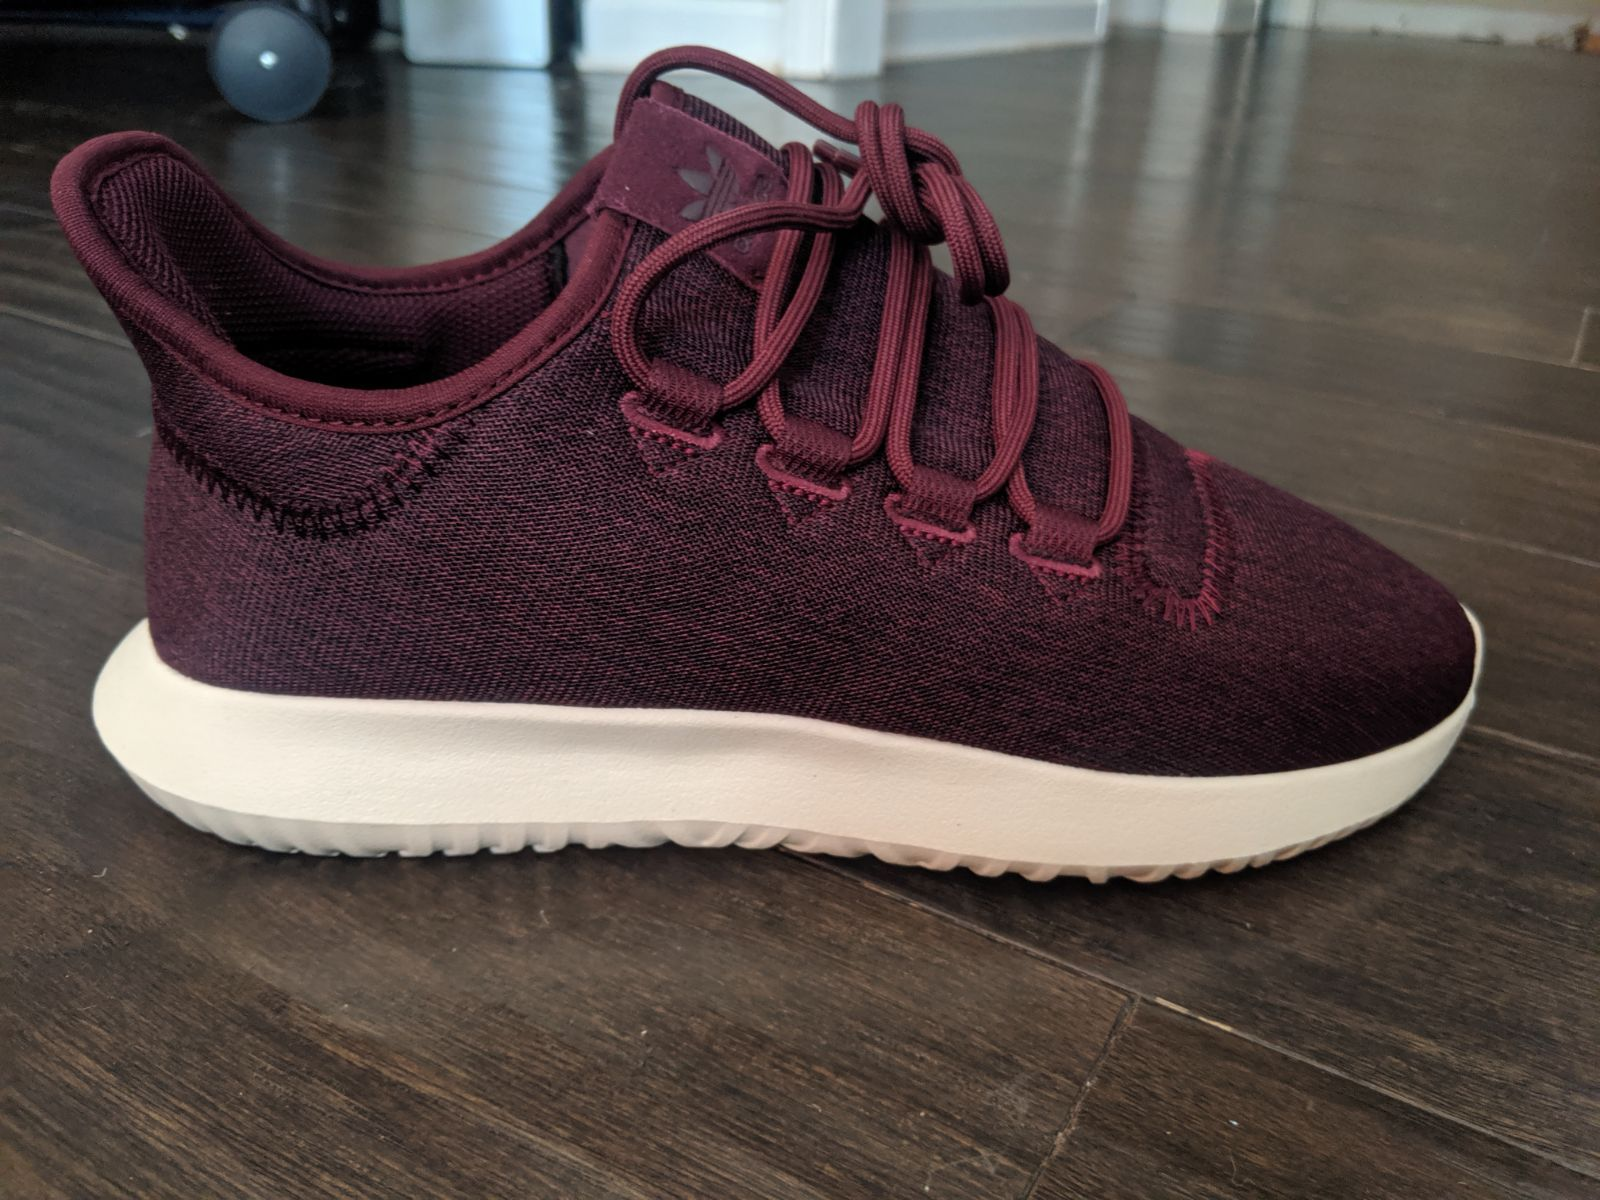 Brand new Adidas tubular shadow shoes Size: 8 Color: Maroon